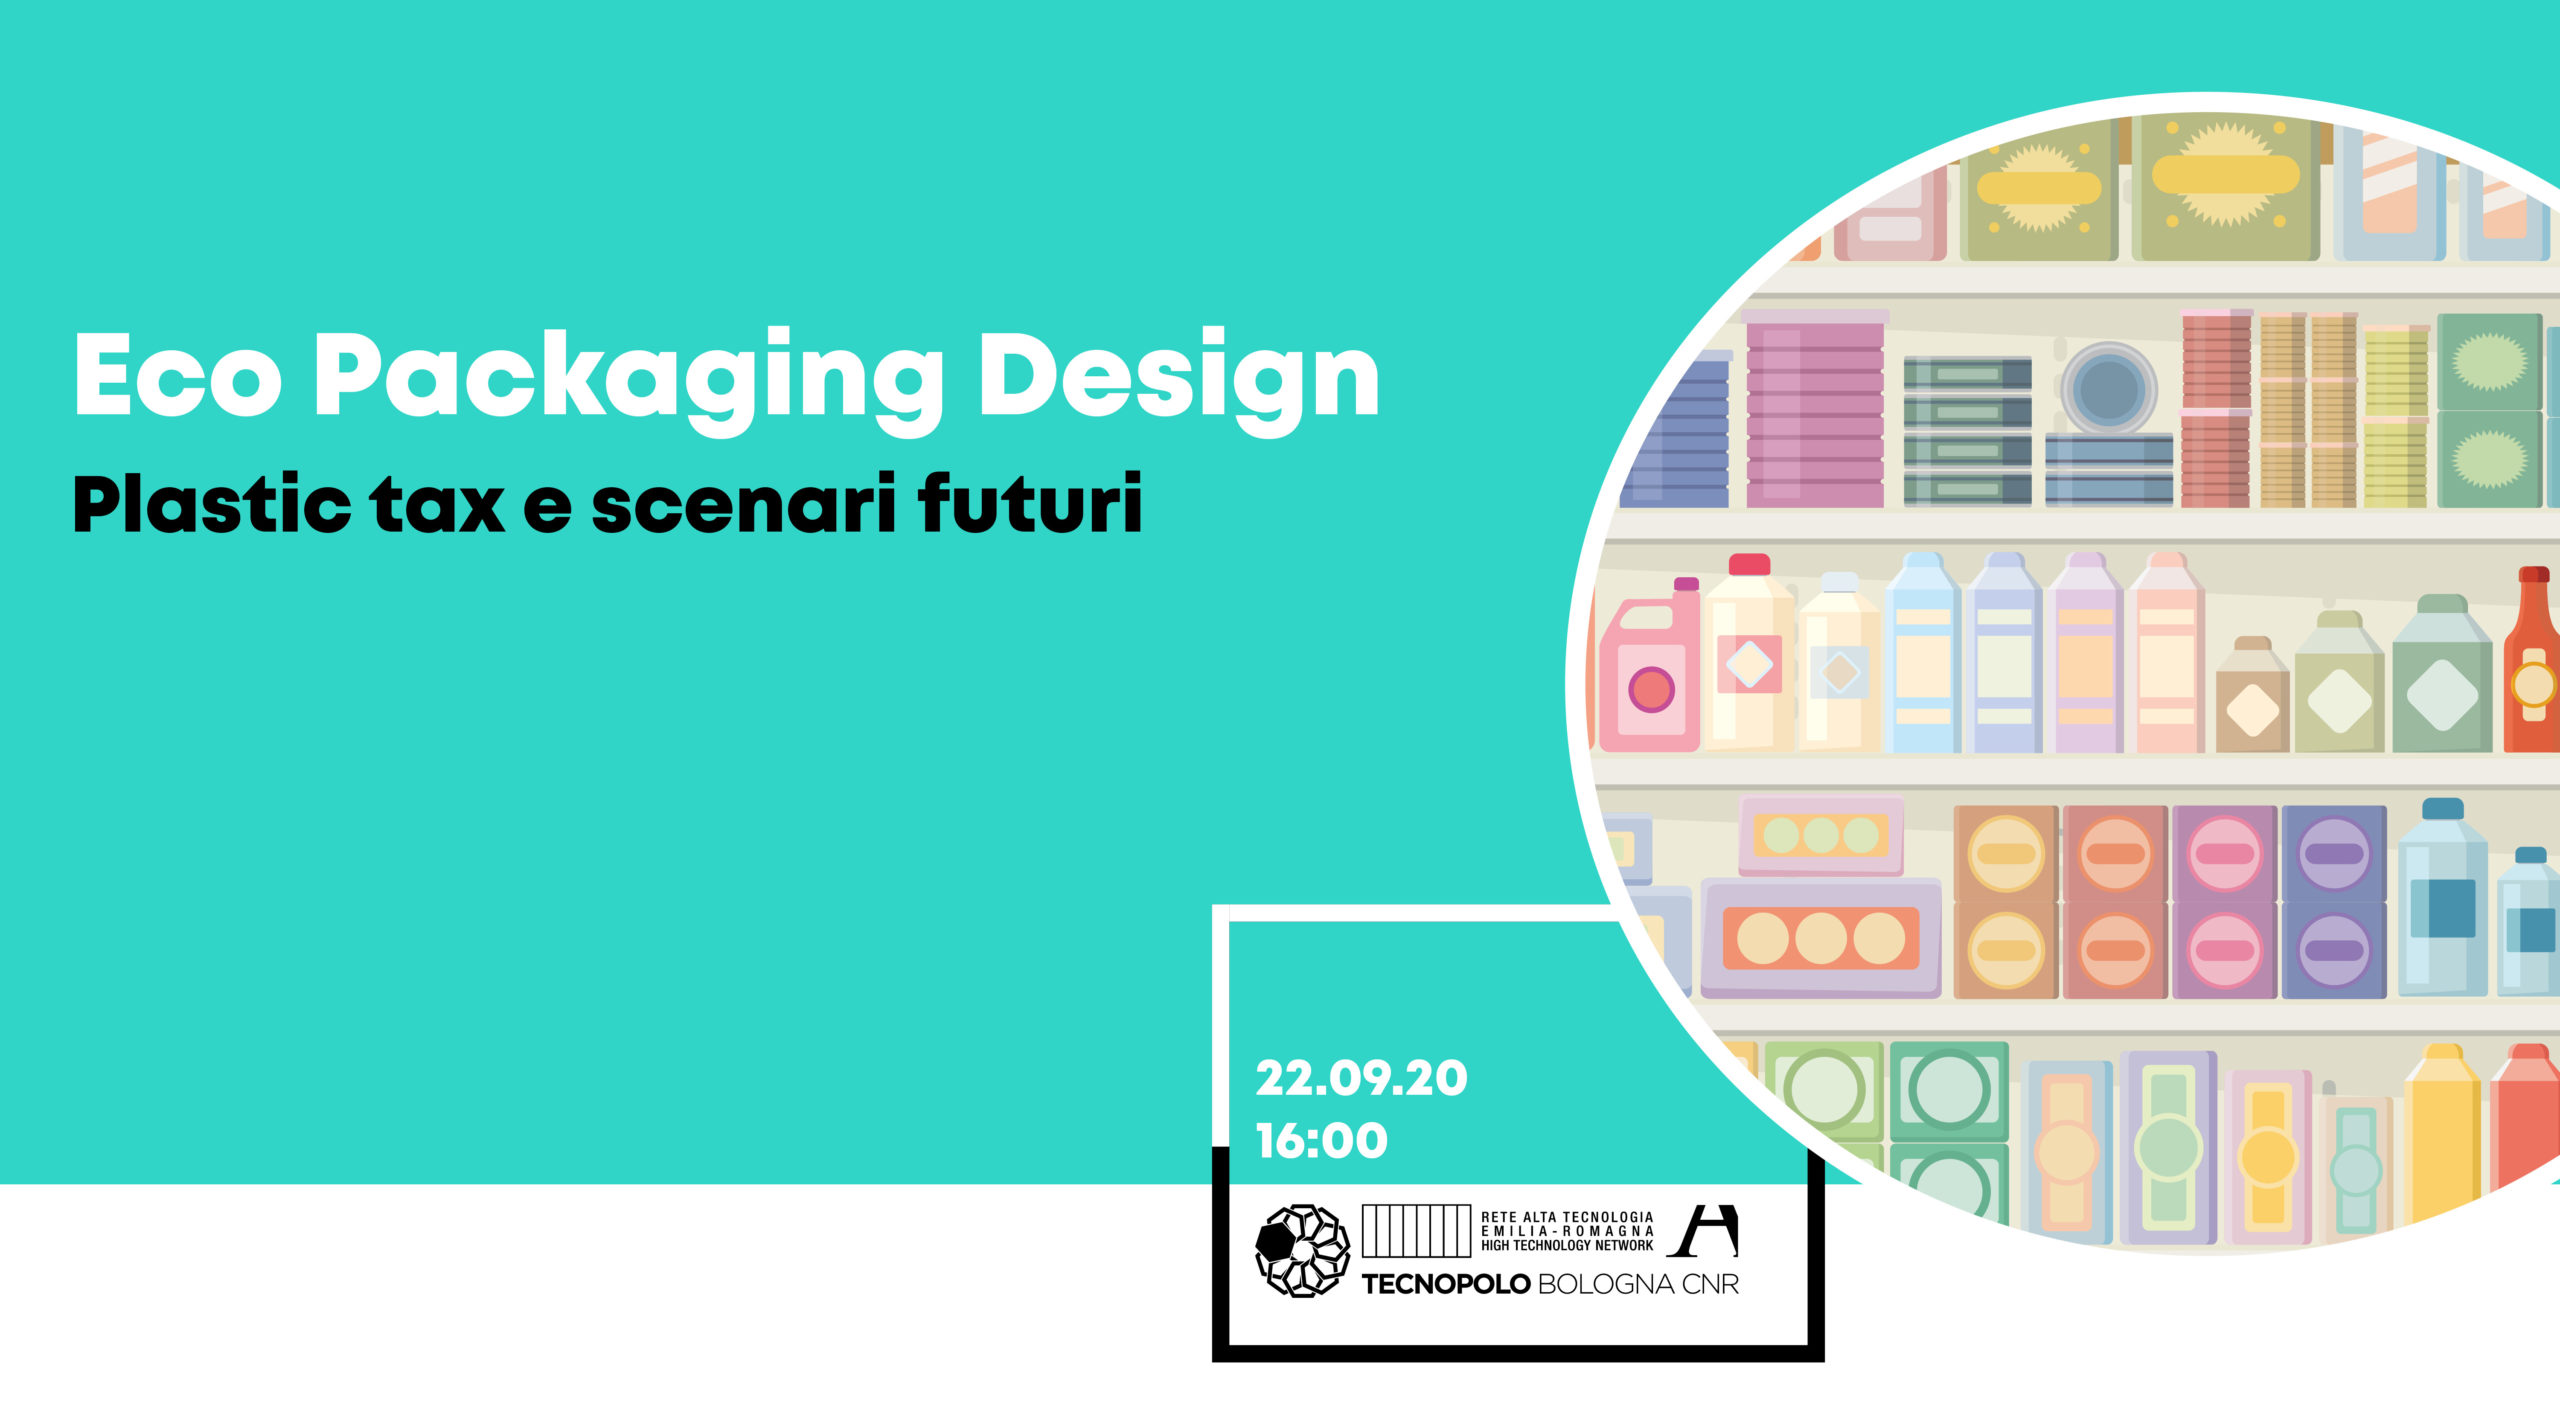 Eco packaging design: evento digitale il 22/09. Iscriviti adesso!